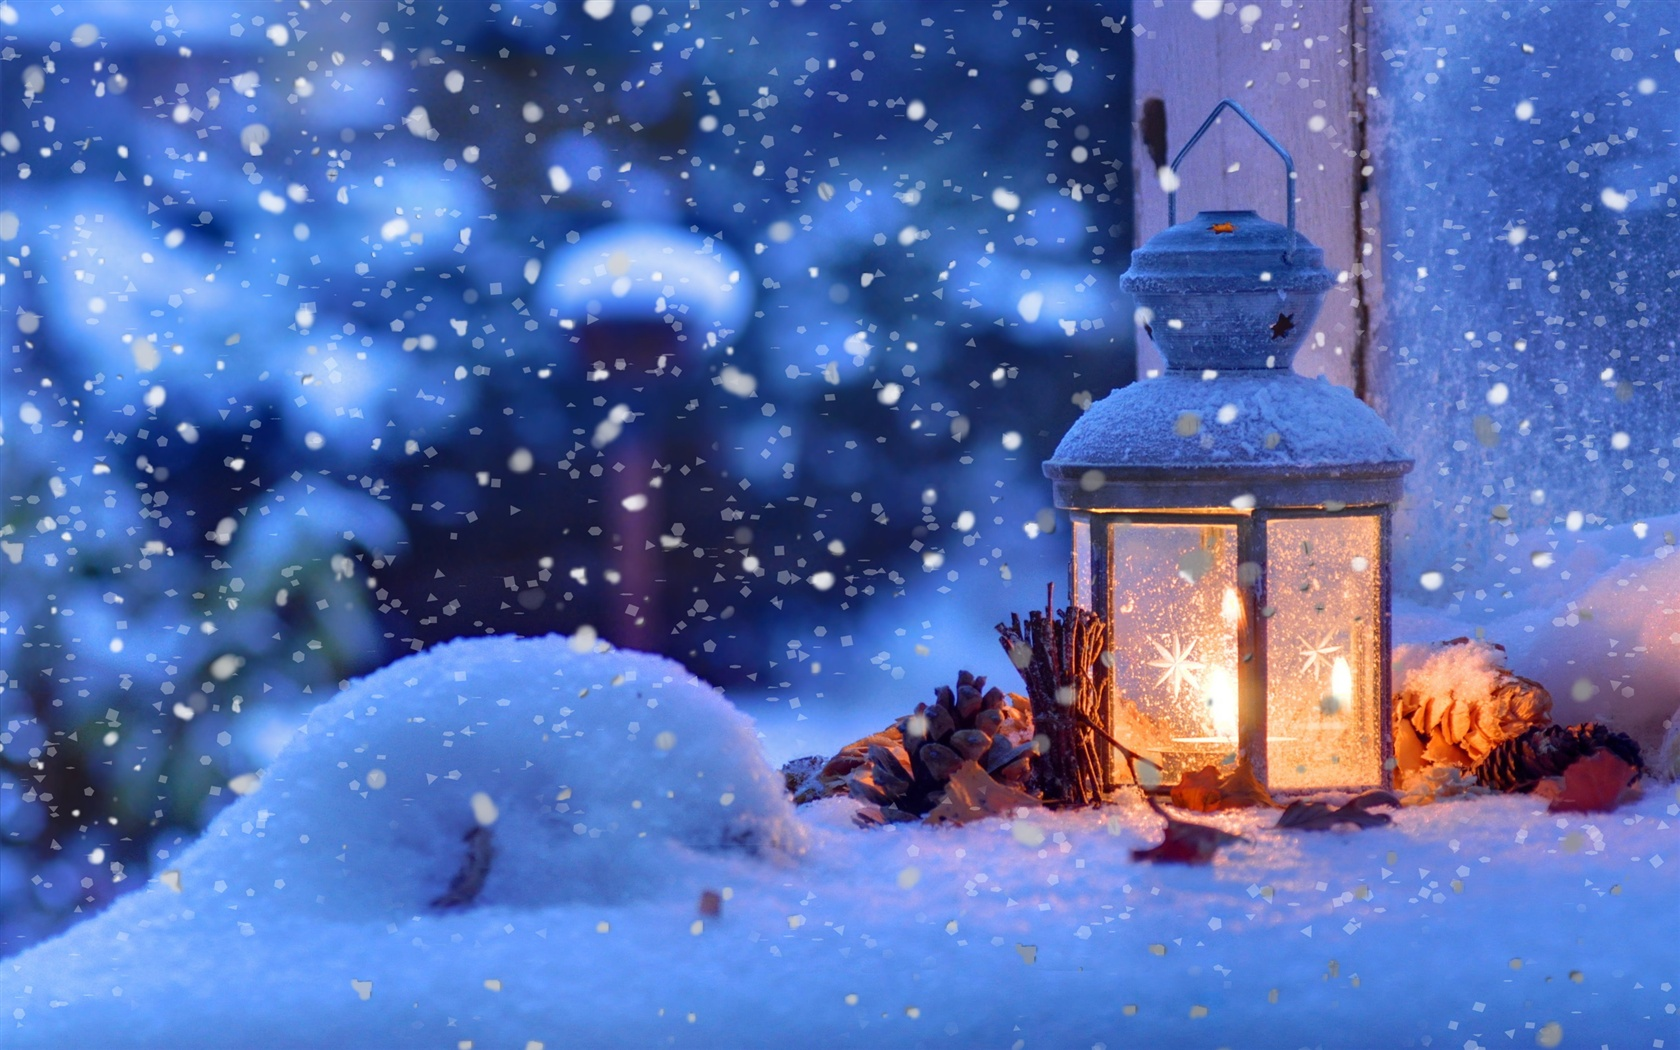 1680x1050 HD Wallpaper Christmas snow winter, light, snowflakes